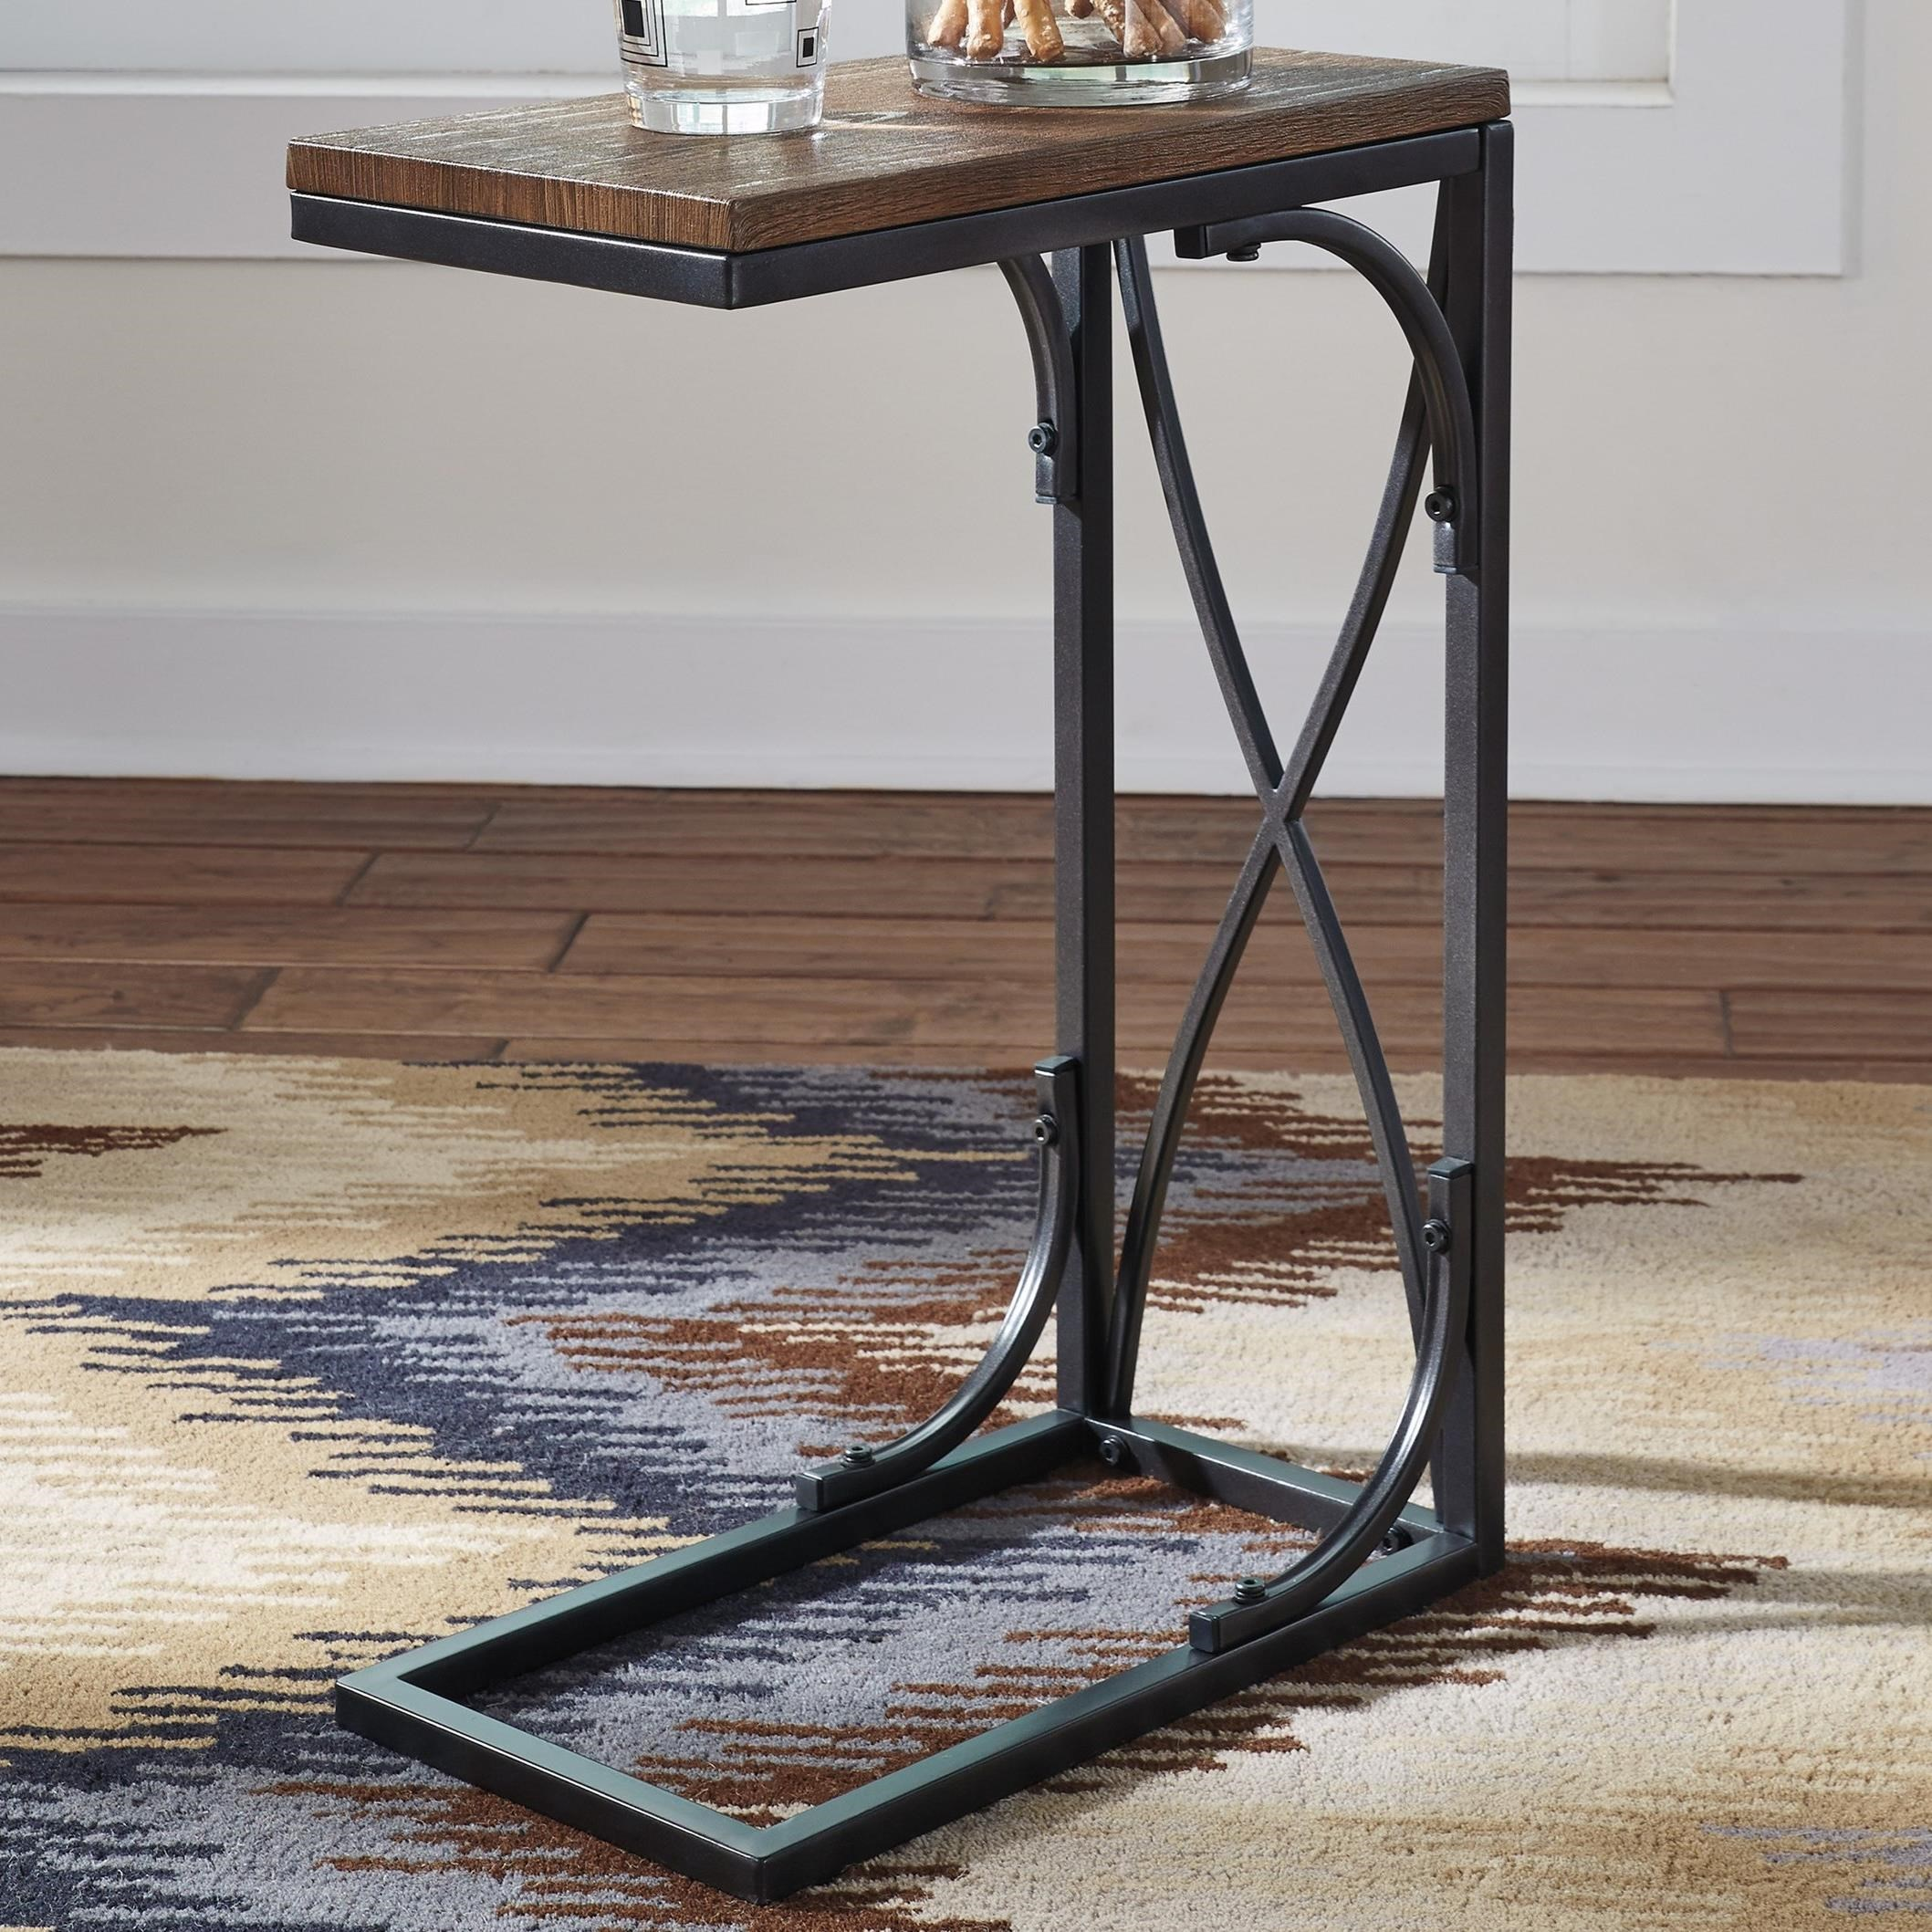 Golander Chair Side End Table by Michael Alan Select at Michael Alan Furniture & Design